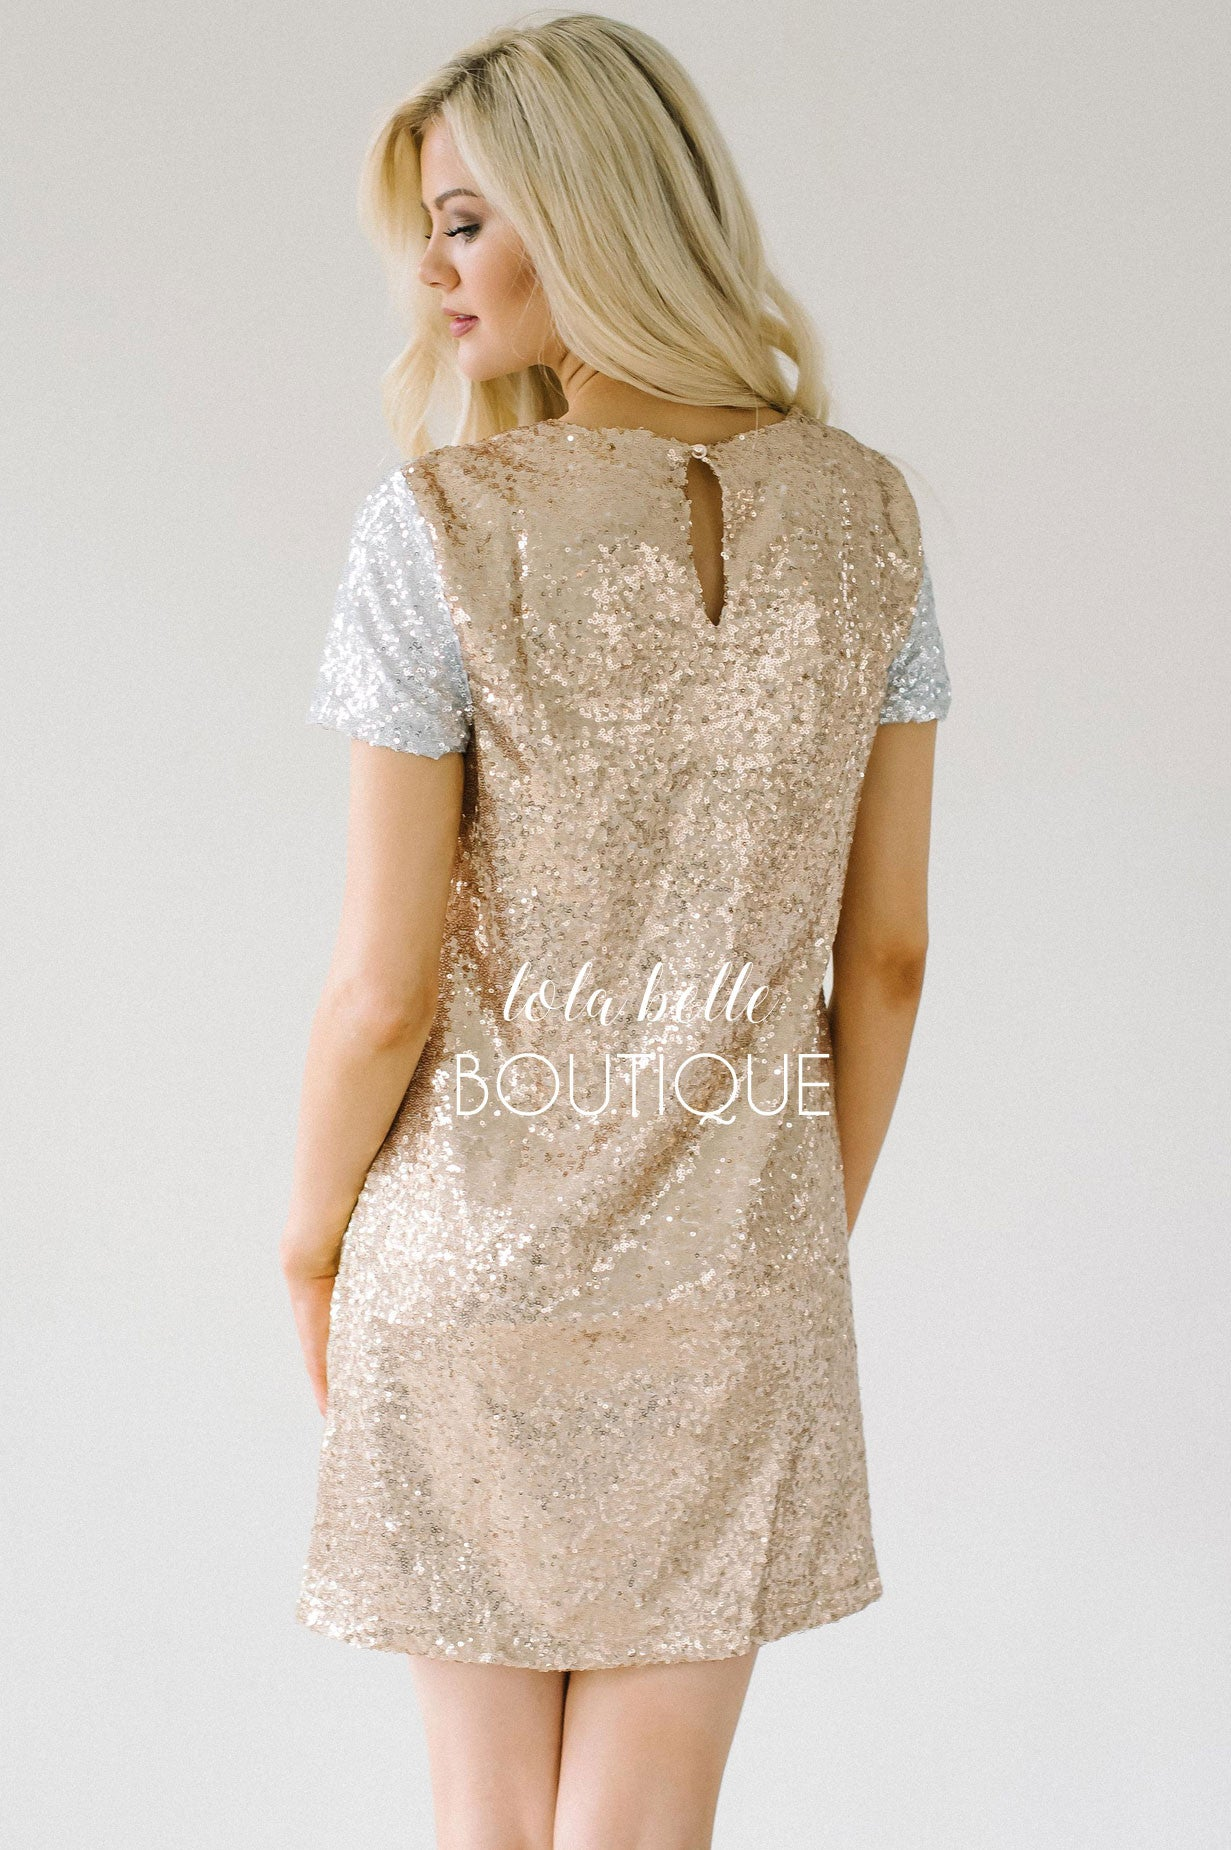 The Most Amazing Sequin Dress